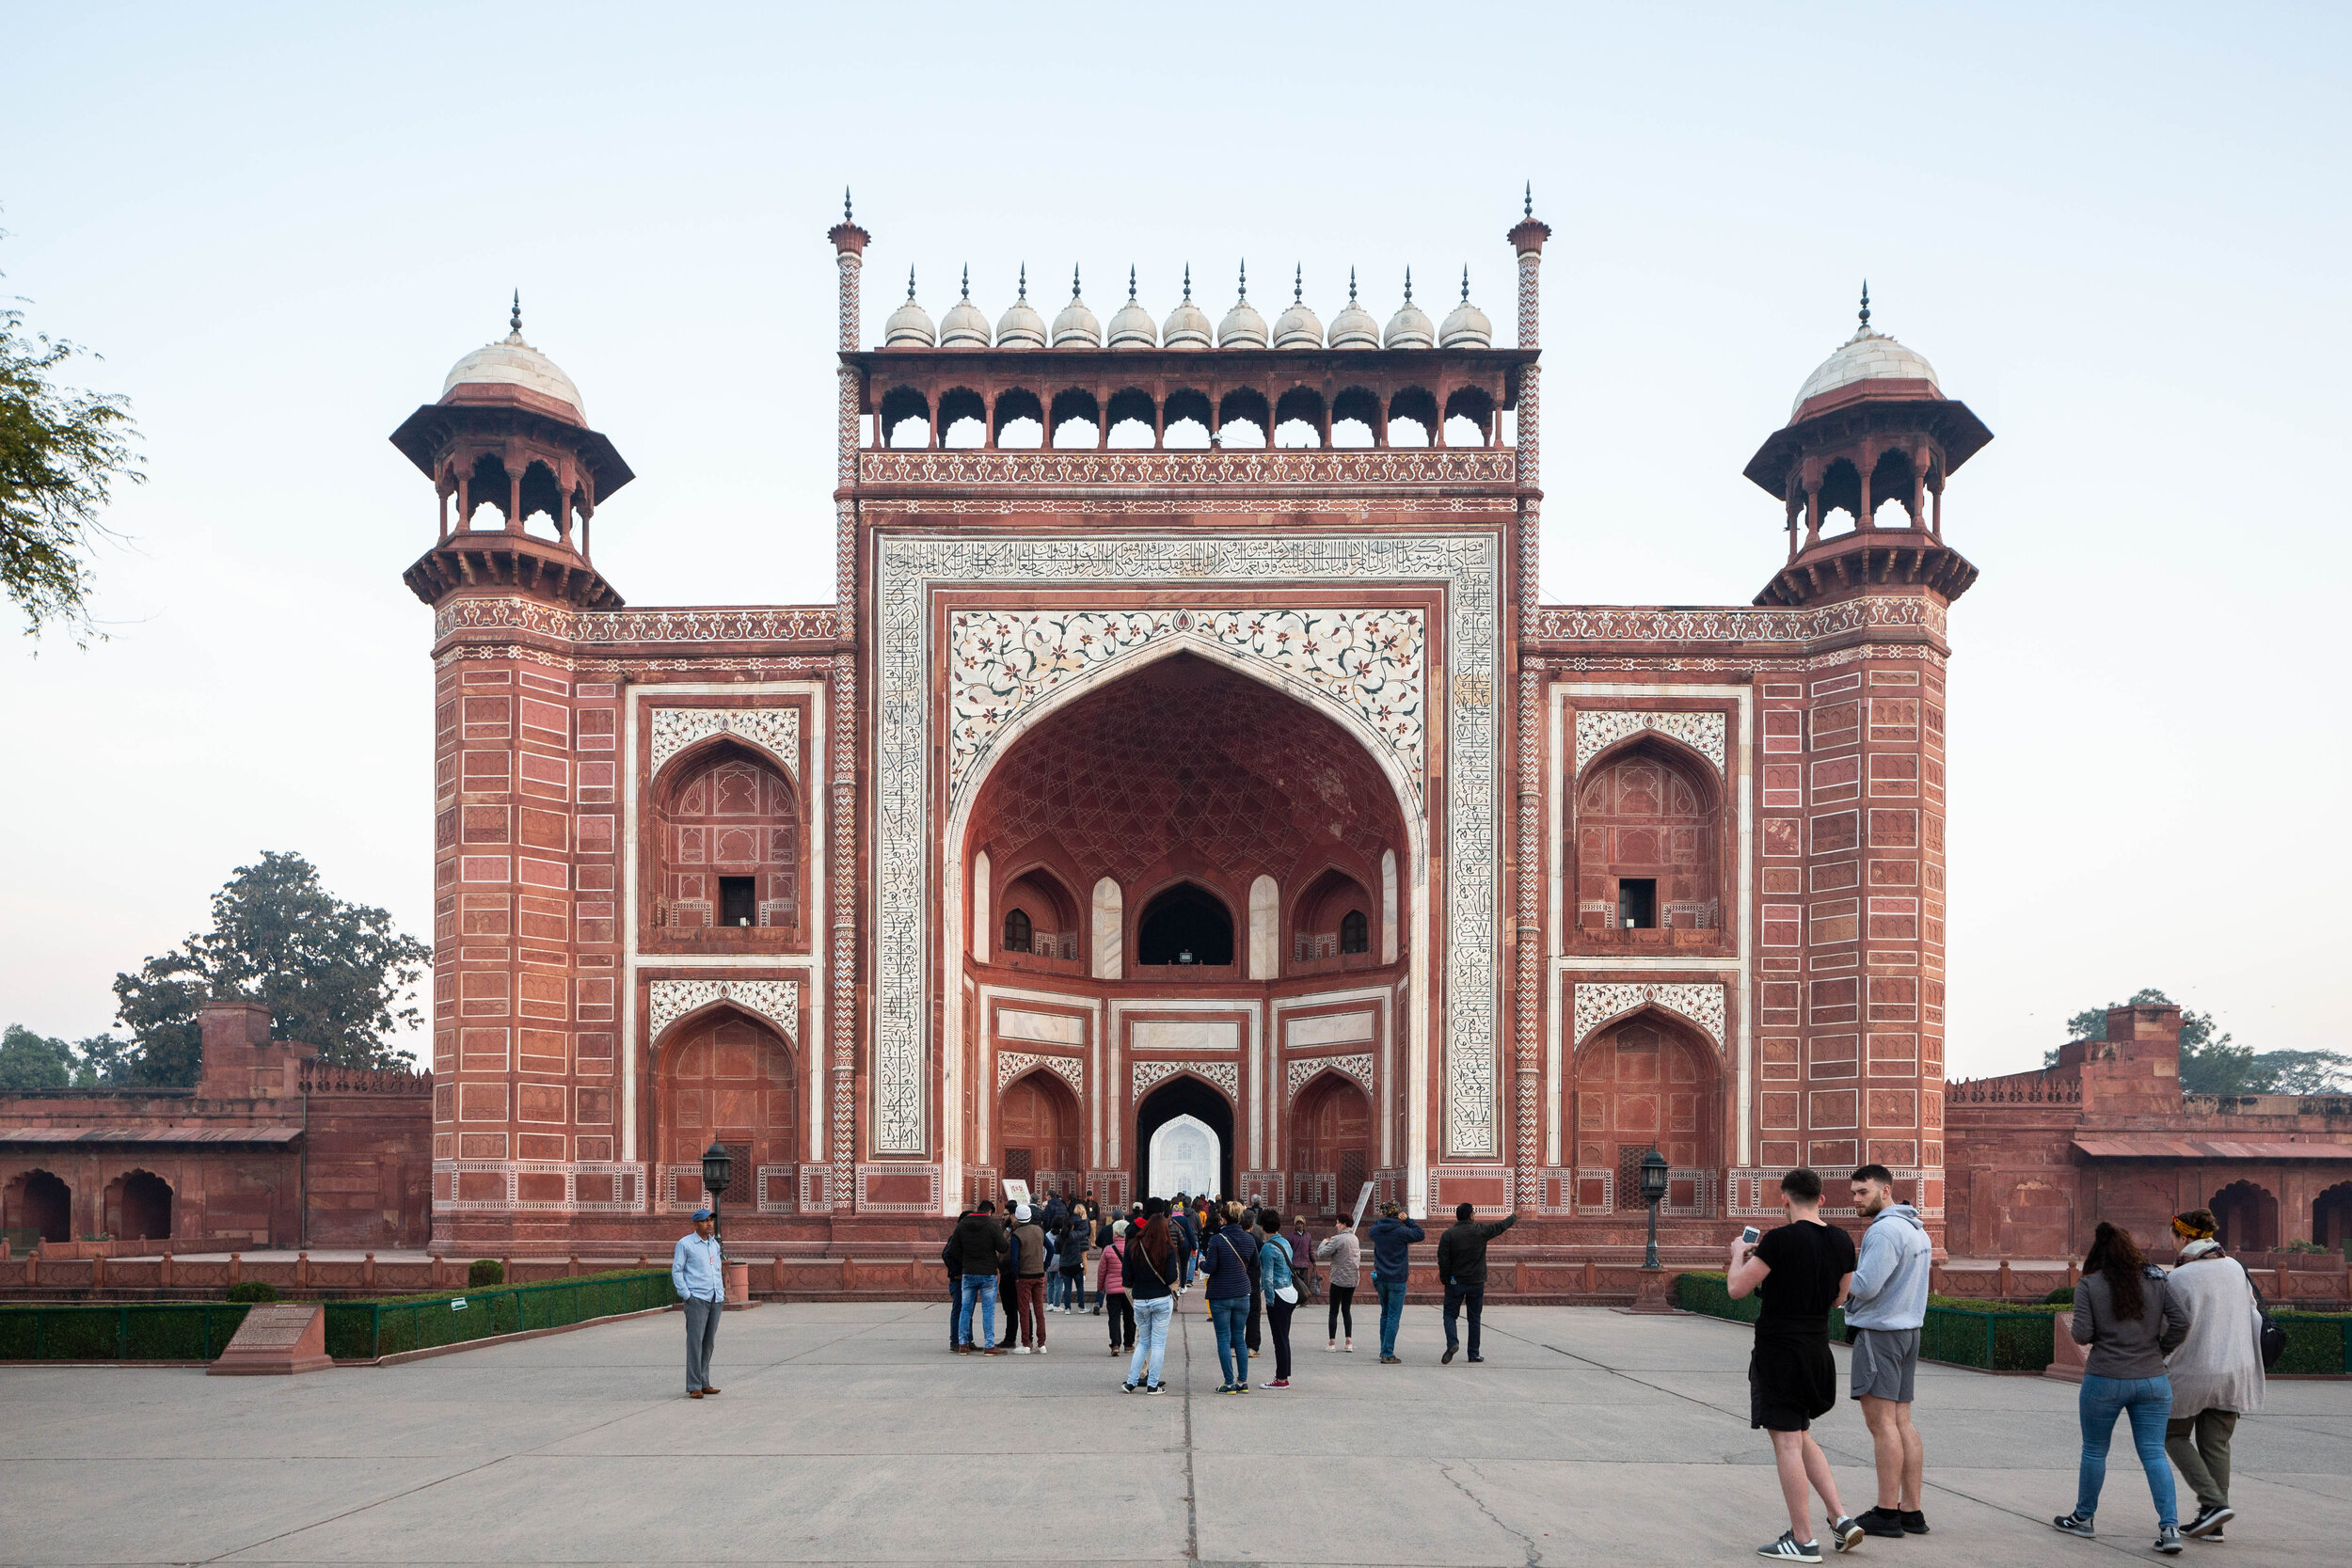 South Gate with the southern portal of the Taj Mahal visible through the arched doorway